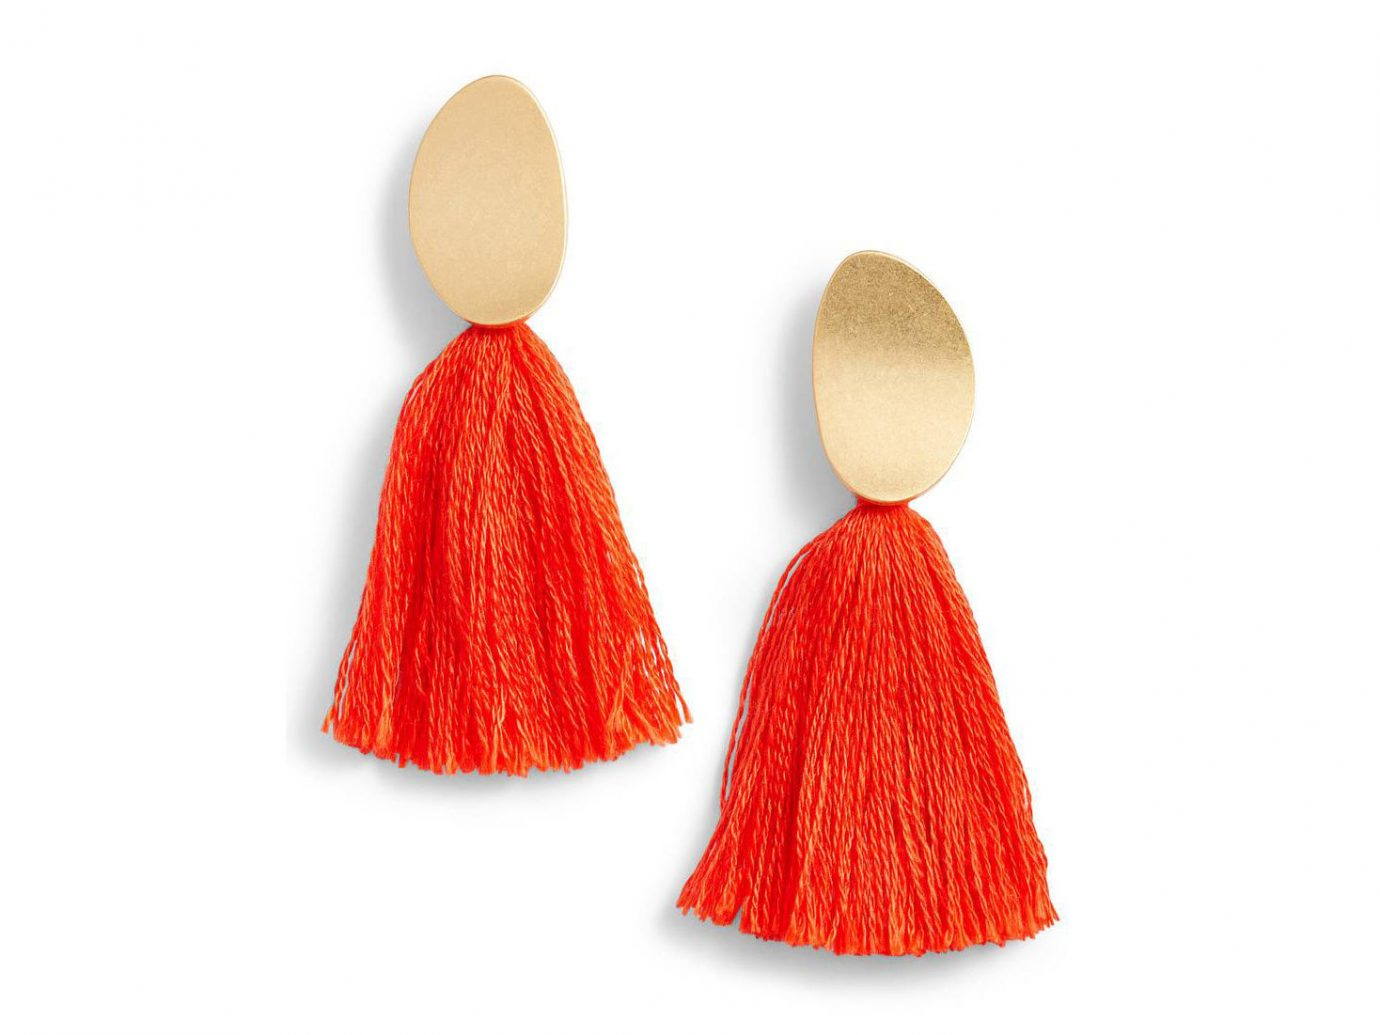 City NYC Style + Design Travel Shop orange red cloth brush peach party hat tool broom